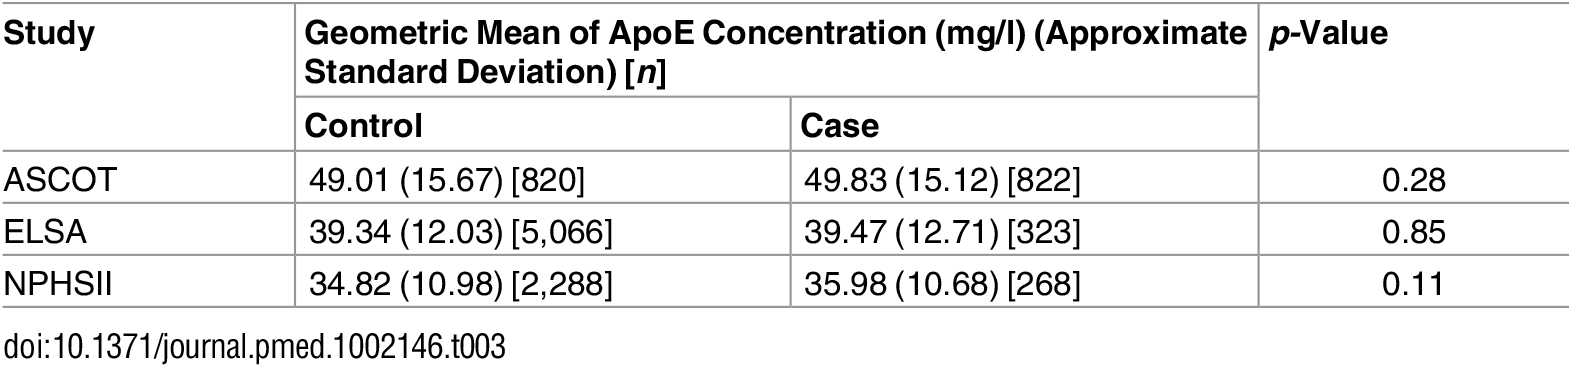 ApoE concentrations in individuals who later developed cardiovascular disease by case/control status in all three studies.